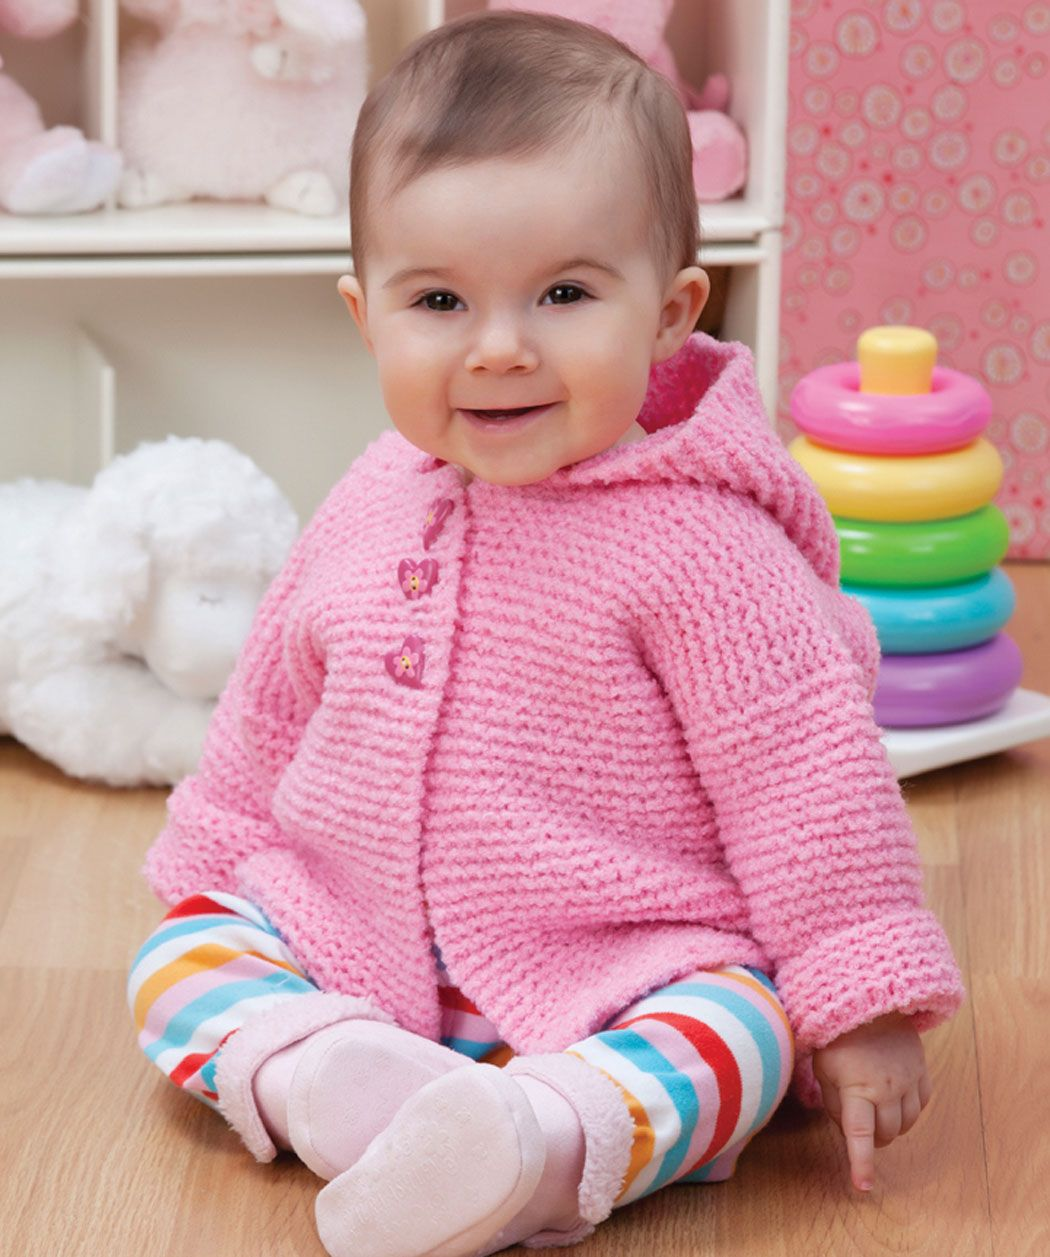 2 years quick Baby boys hooded CARDIGAN JACKET KNITTING PATTERN Chunky 6mths